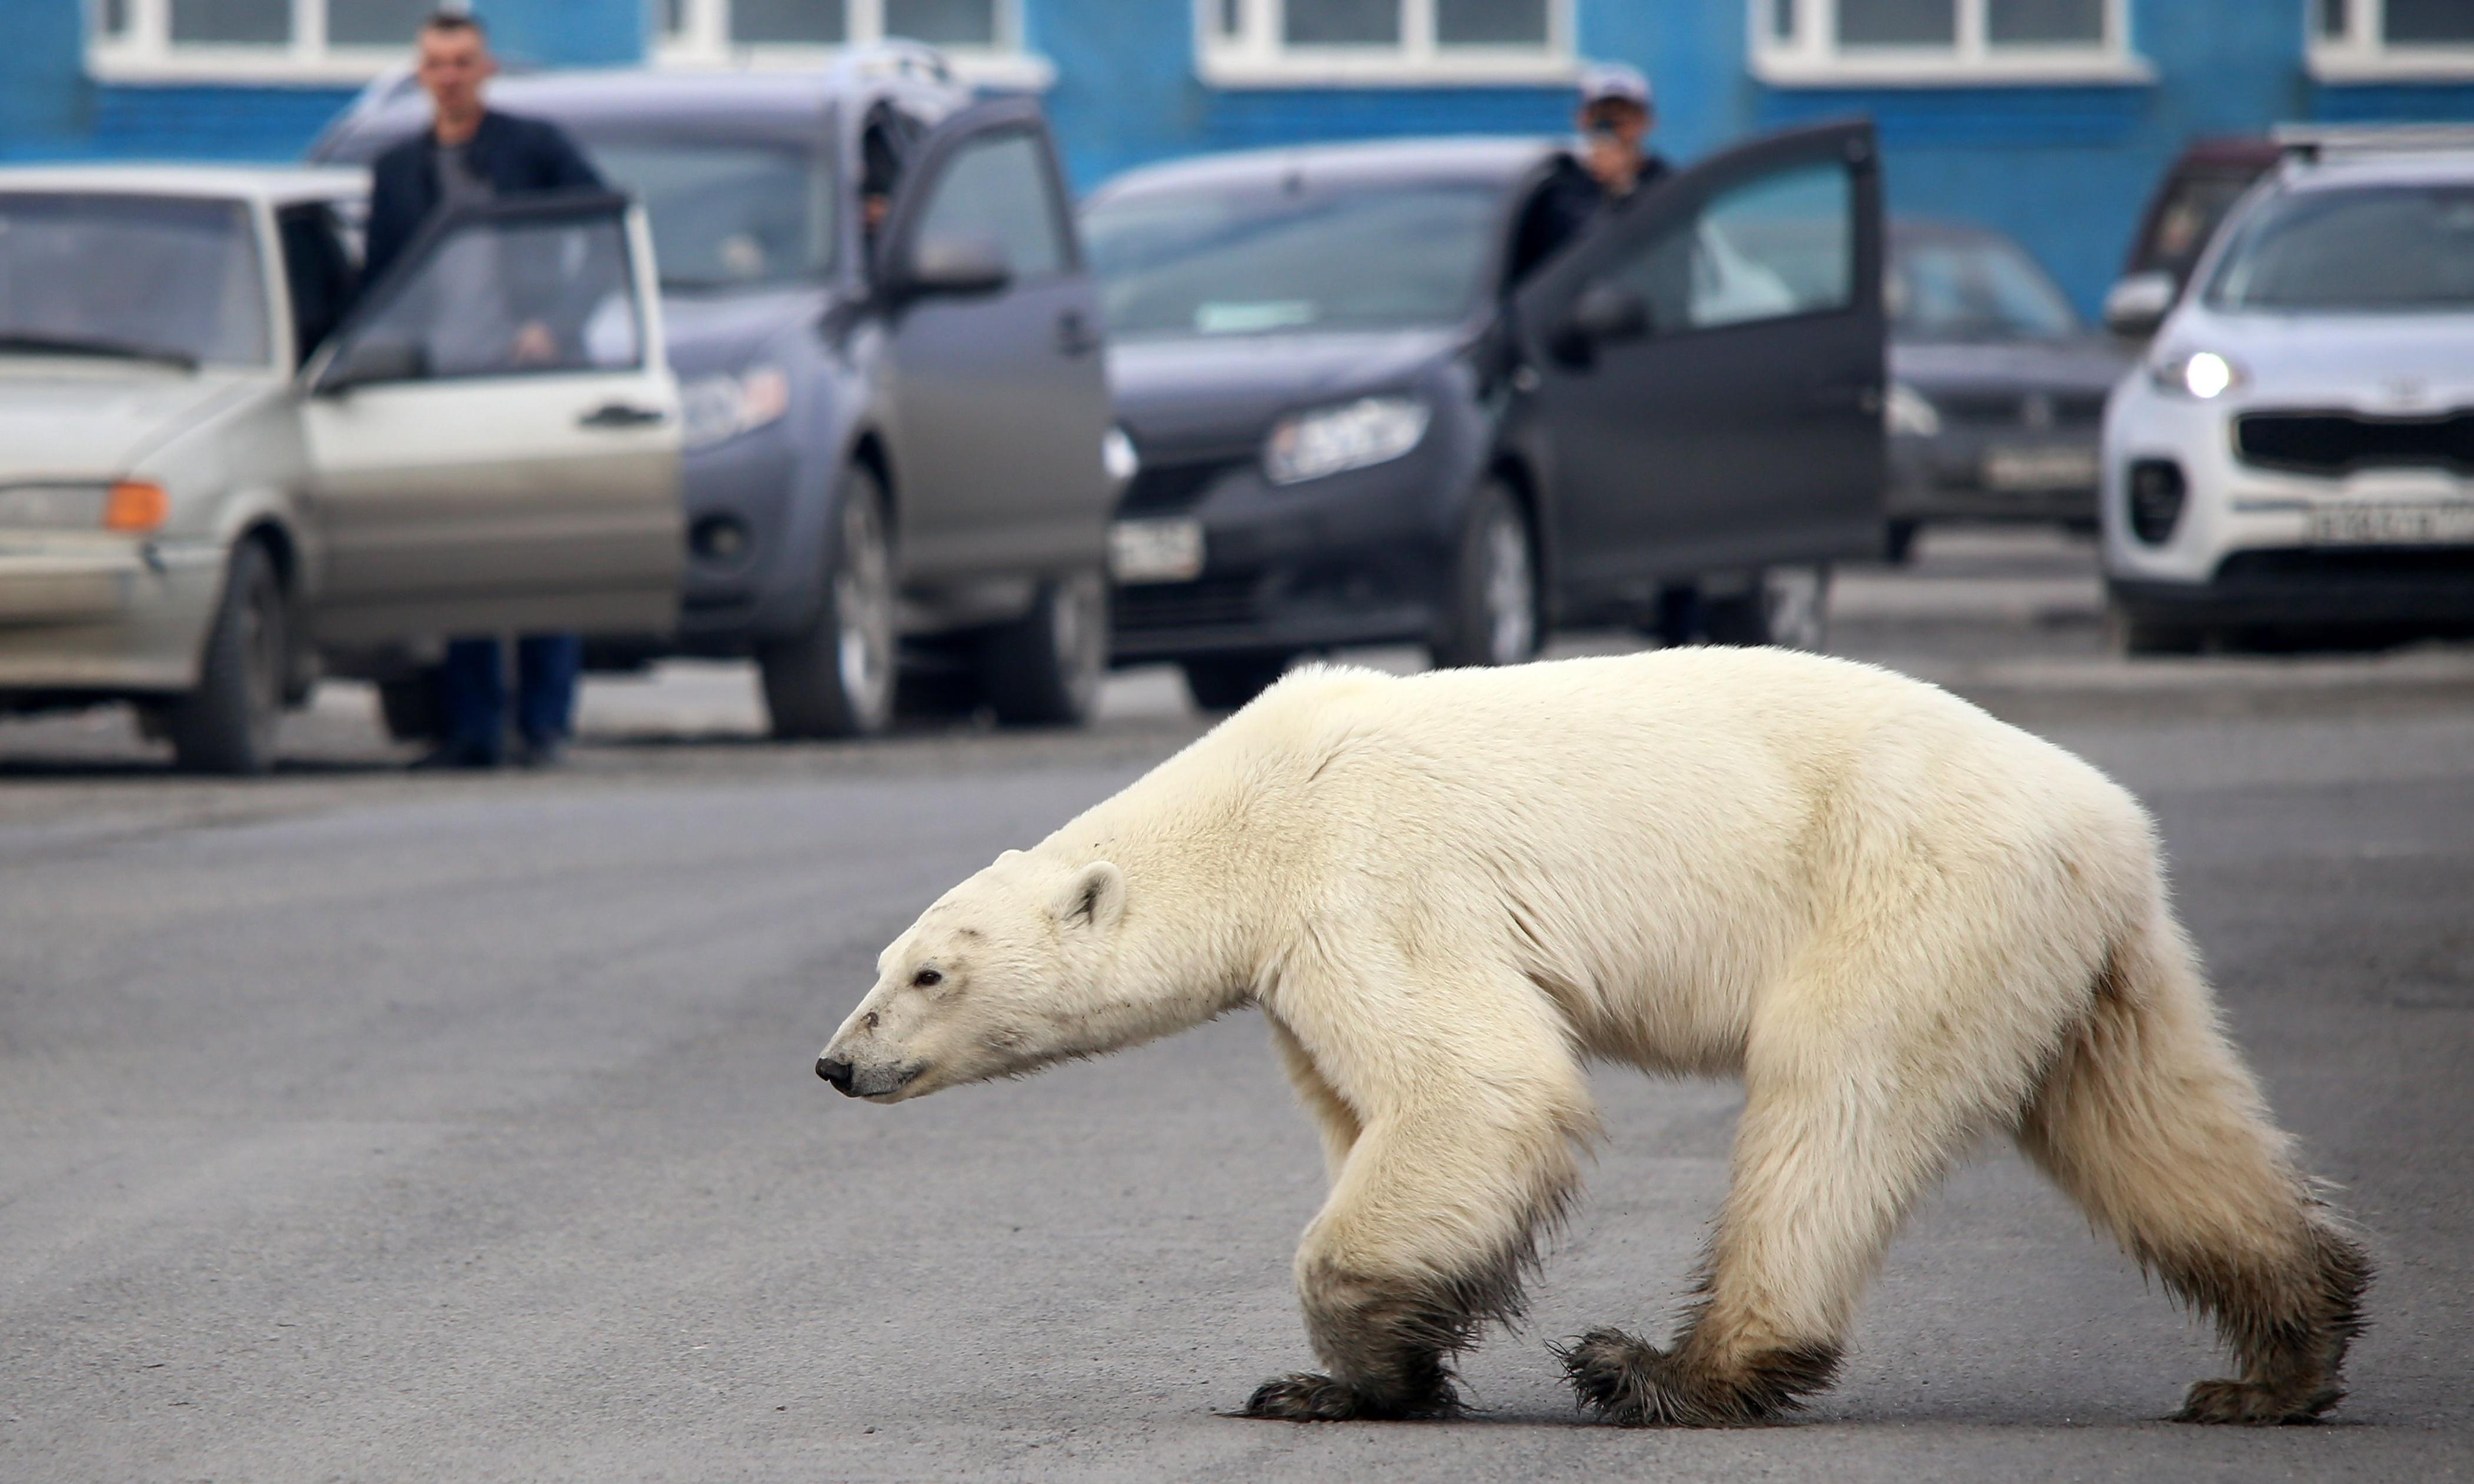 Human disturbance increasing cannibalism among polar bears